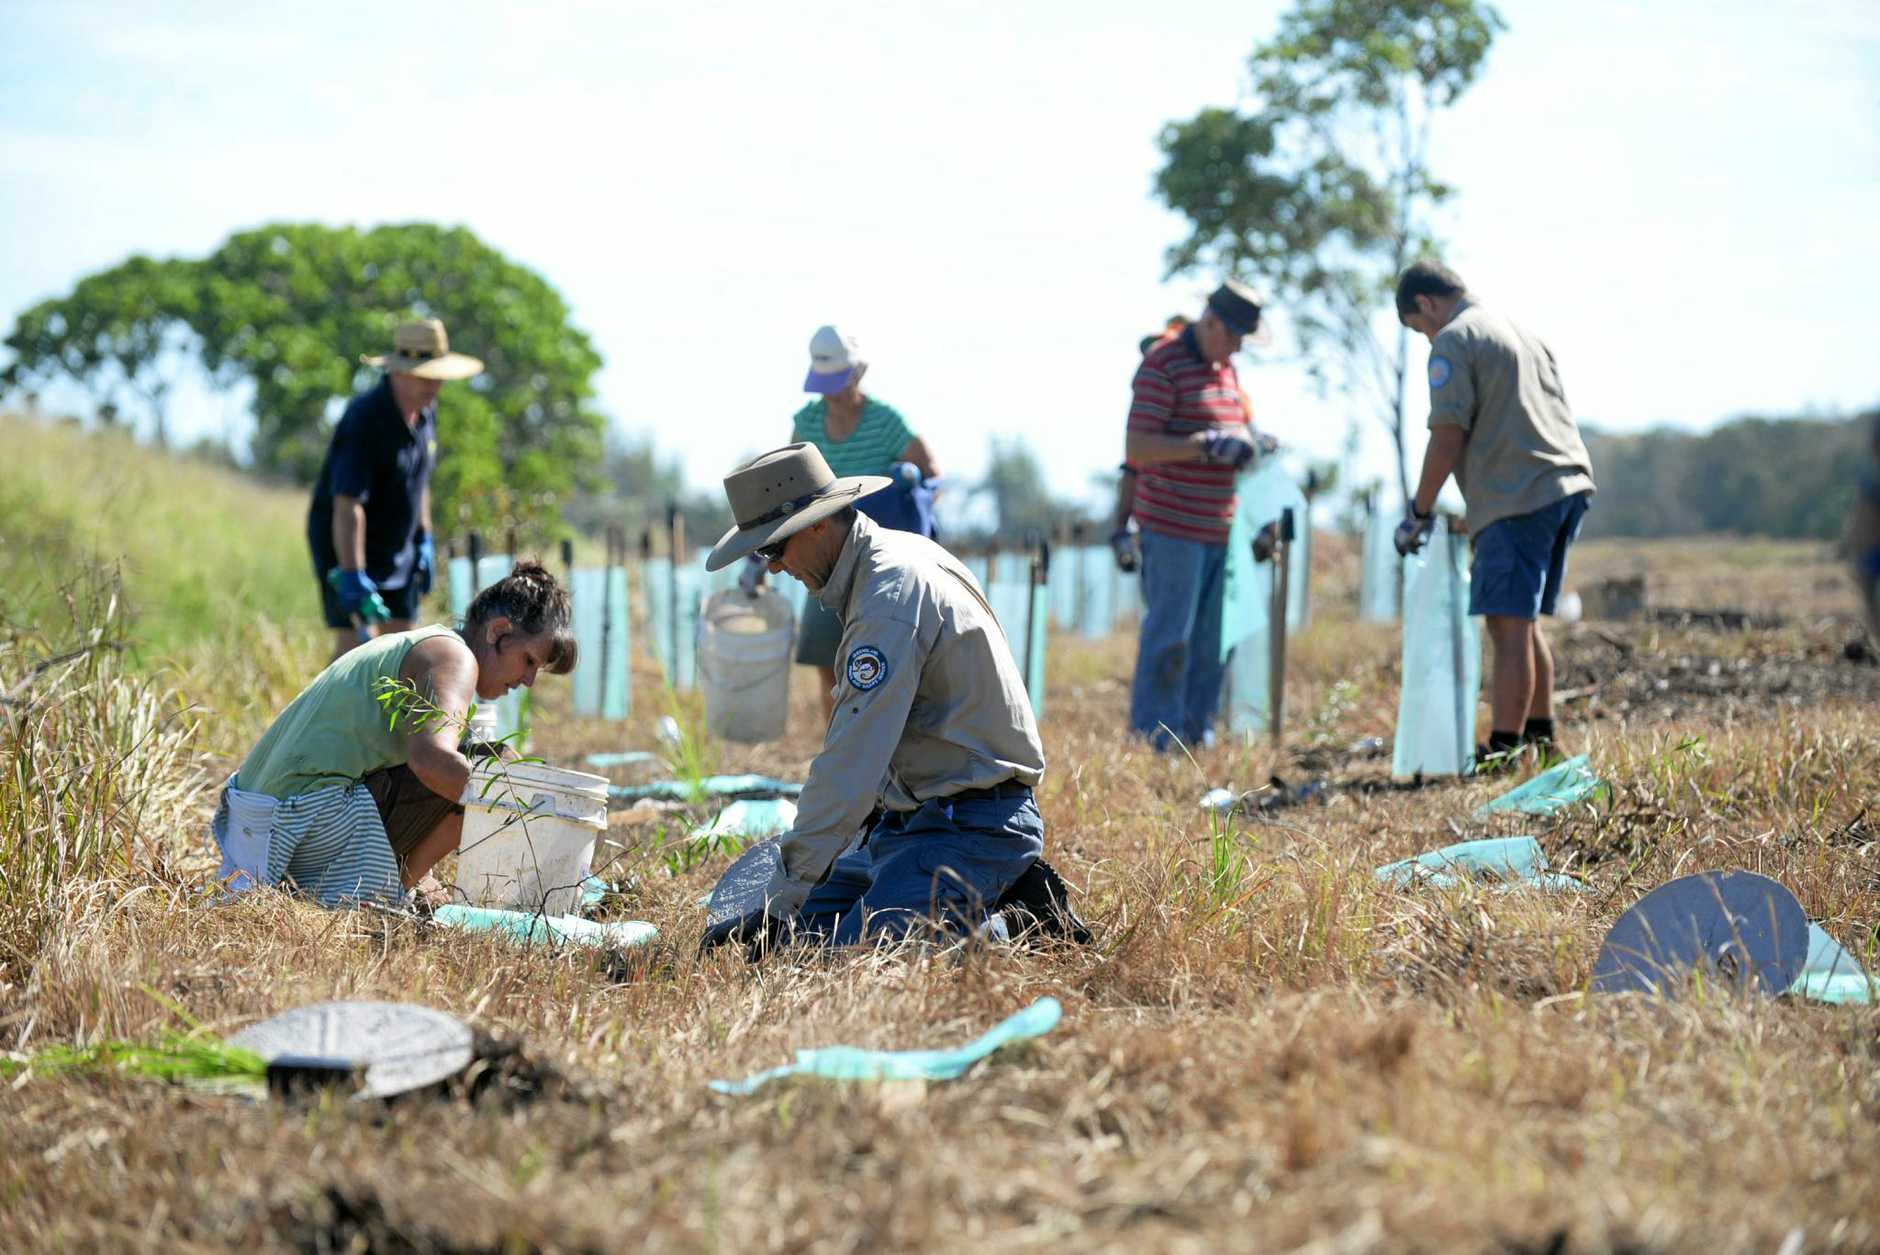 TURTLE CONSERVATION: Turtle volunteer Naomi Santin and QPWS ranger Shane O'Connor plant melaleuca trees at Mon Repos on World Turtle Day.